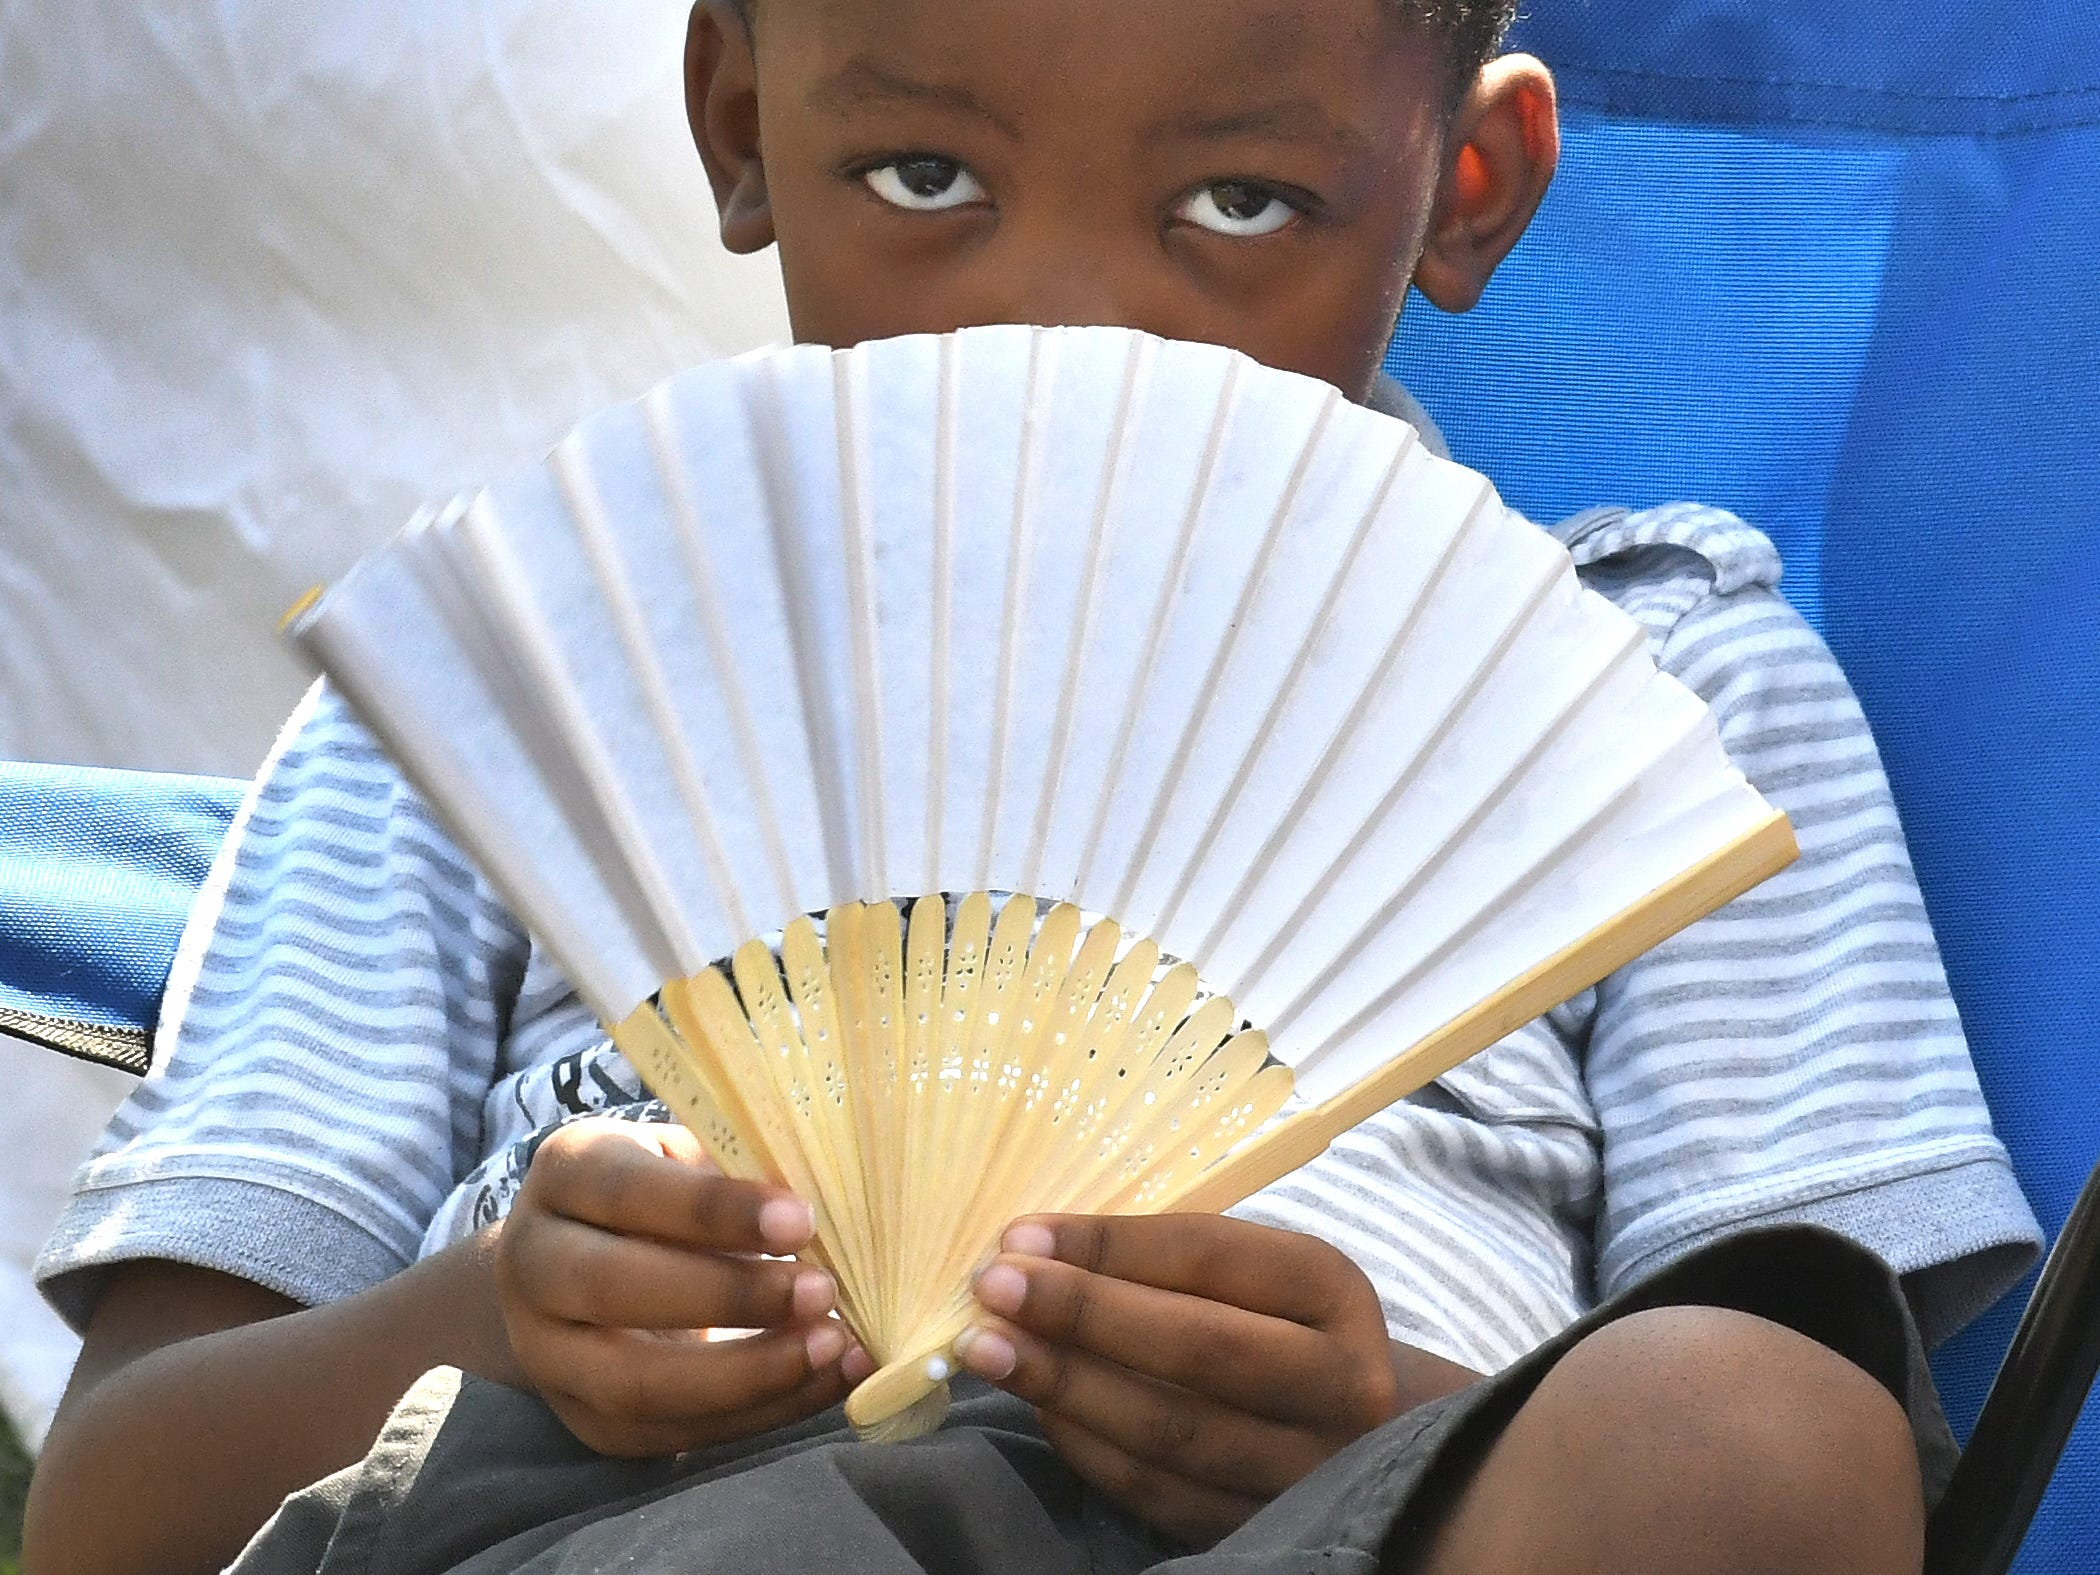 Playing it cool and staying cool at the same time, Miles Campbell, 6 deals with the 90 plus temperatures at the Belle Isle Art Fair.